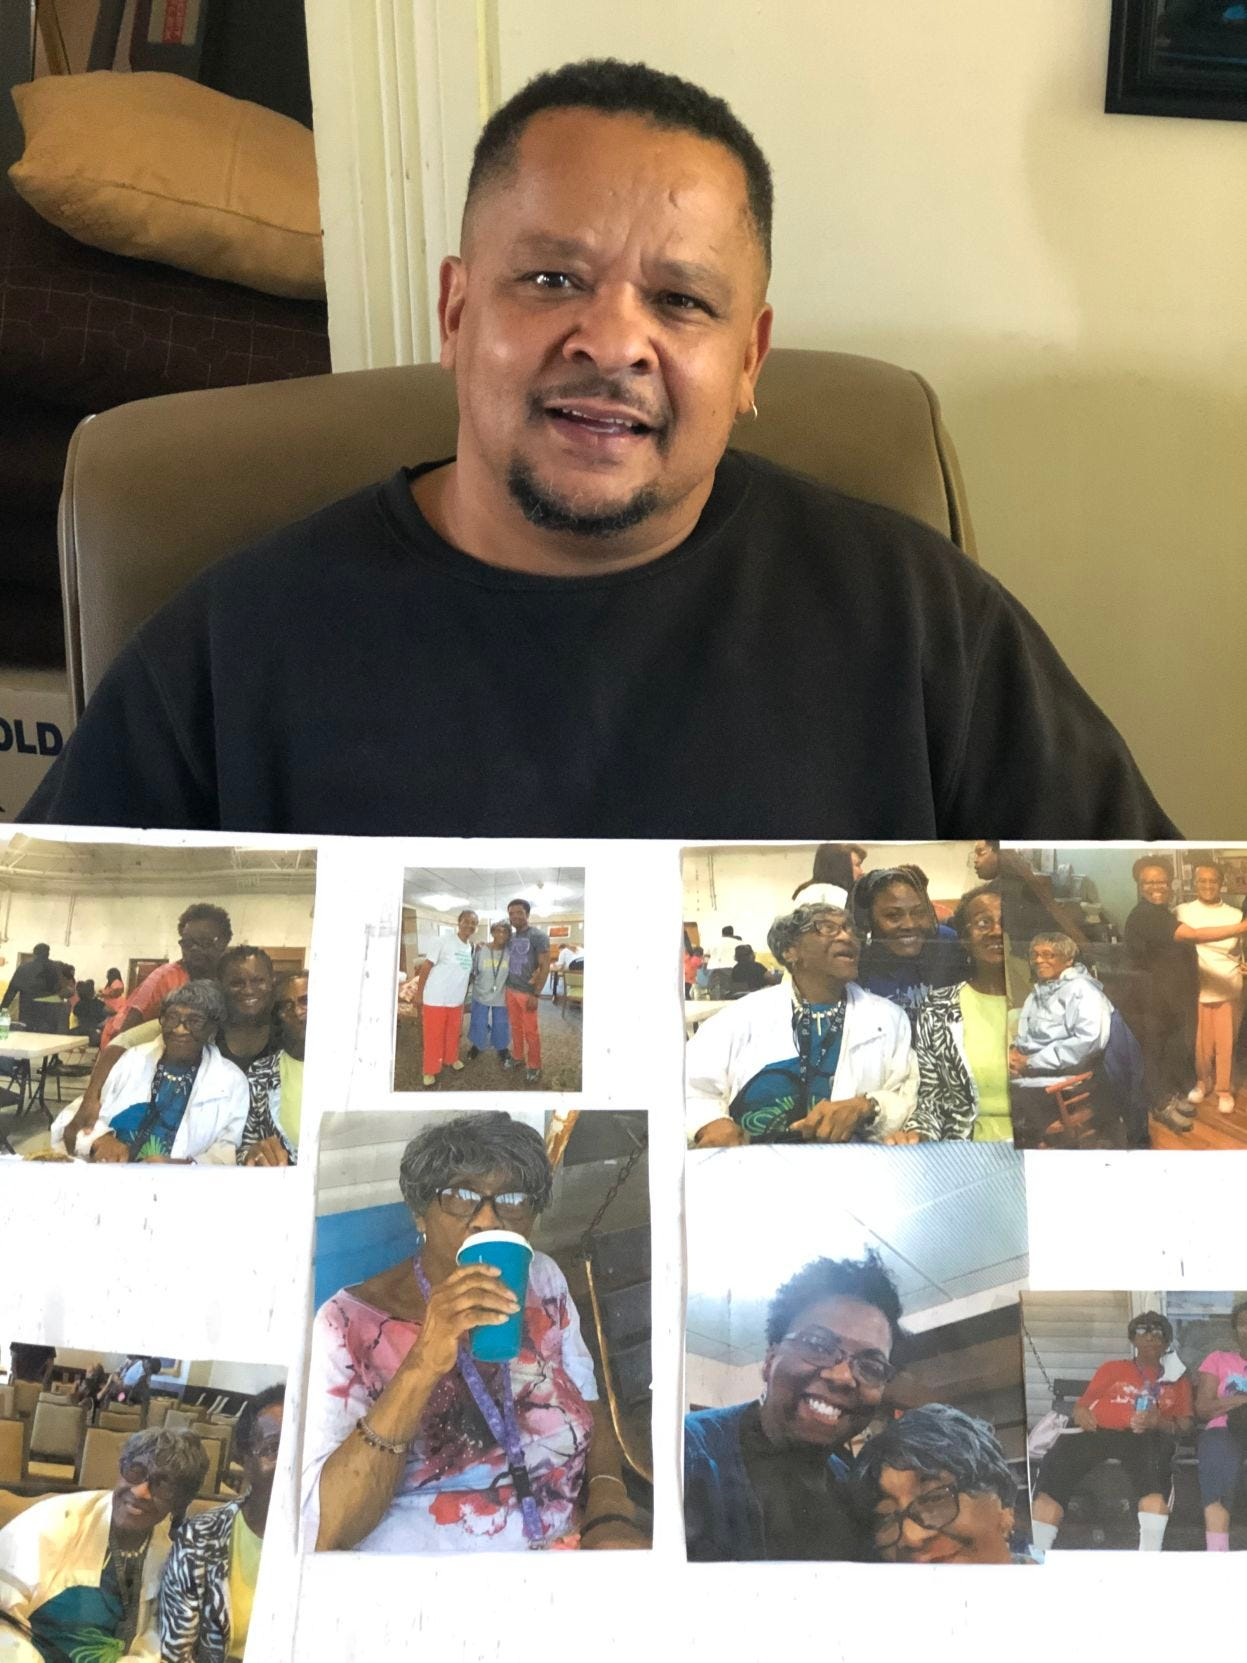 Michael Lowery with pictures of his grandmother, Helen Mae Lowery, who died of COVID-19 in Davenport in October. His grandmother was a good, old soul, he says.